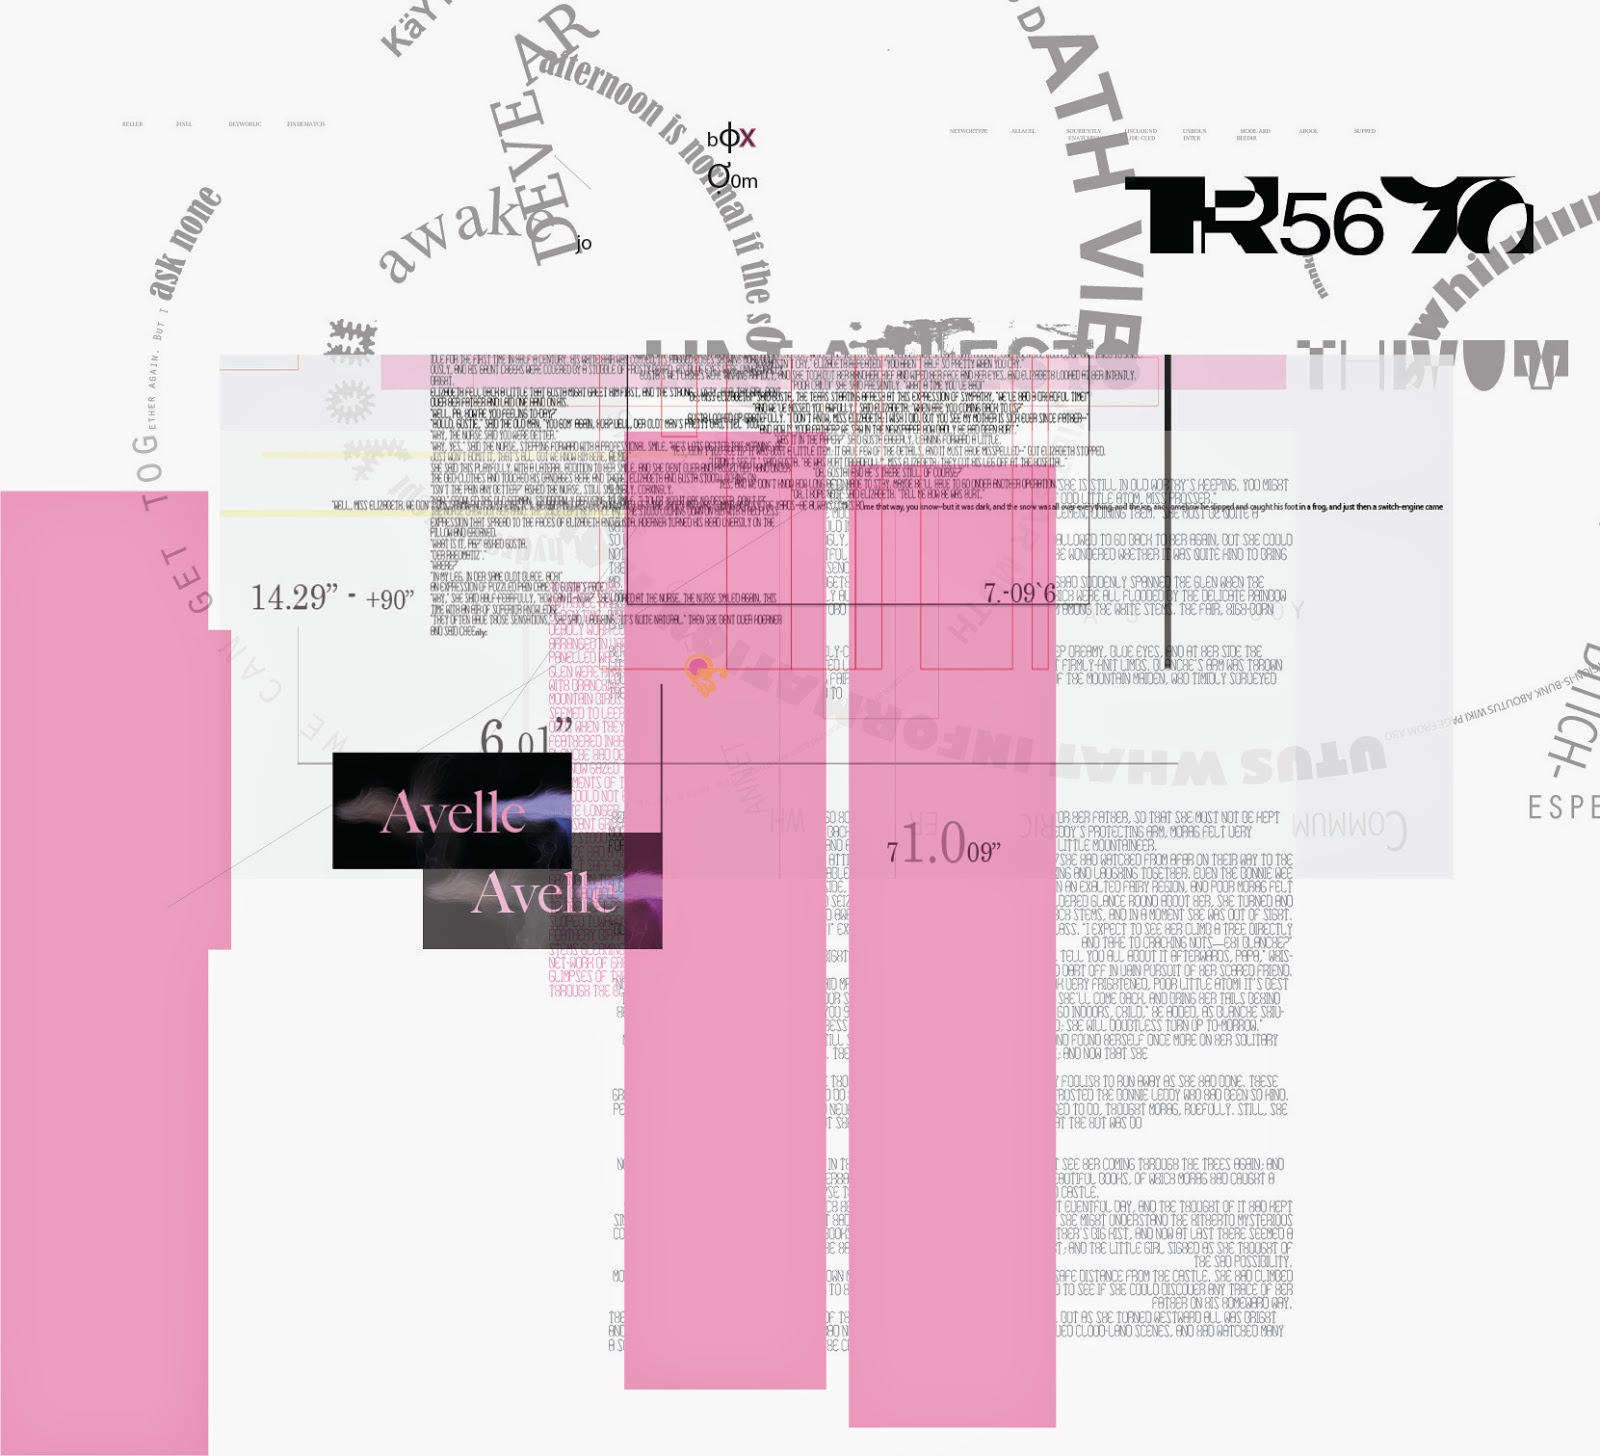 Image from Layer 3/ Page 16 of Performance Notes. Total of 17 layers.